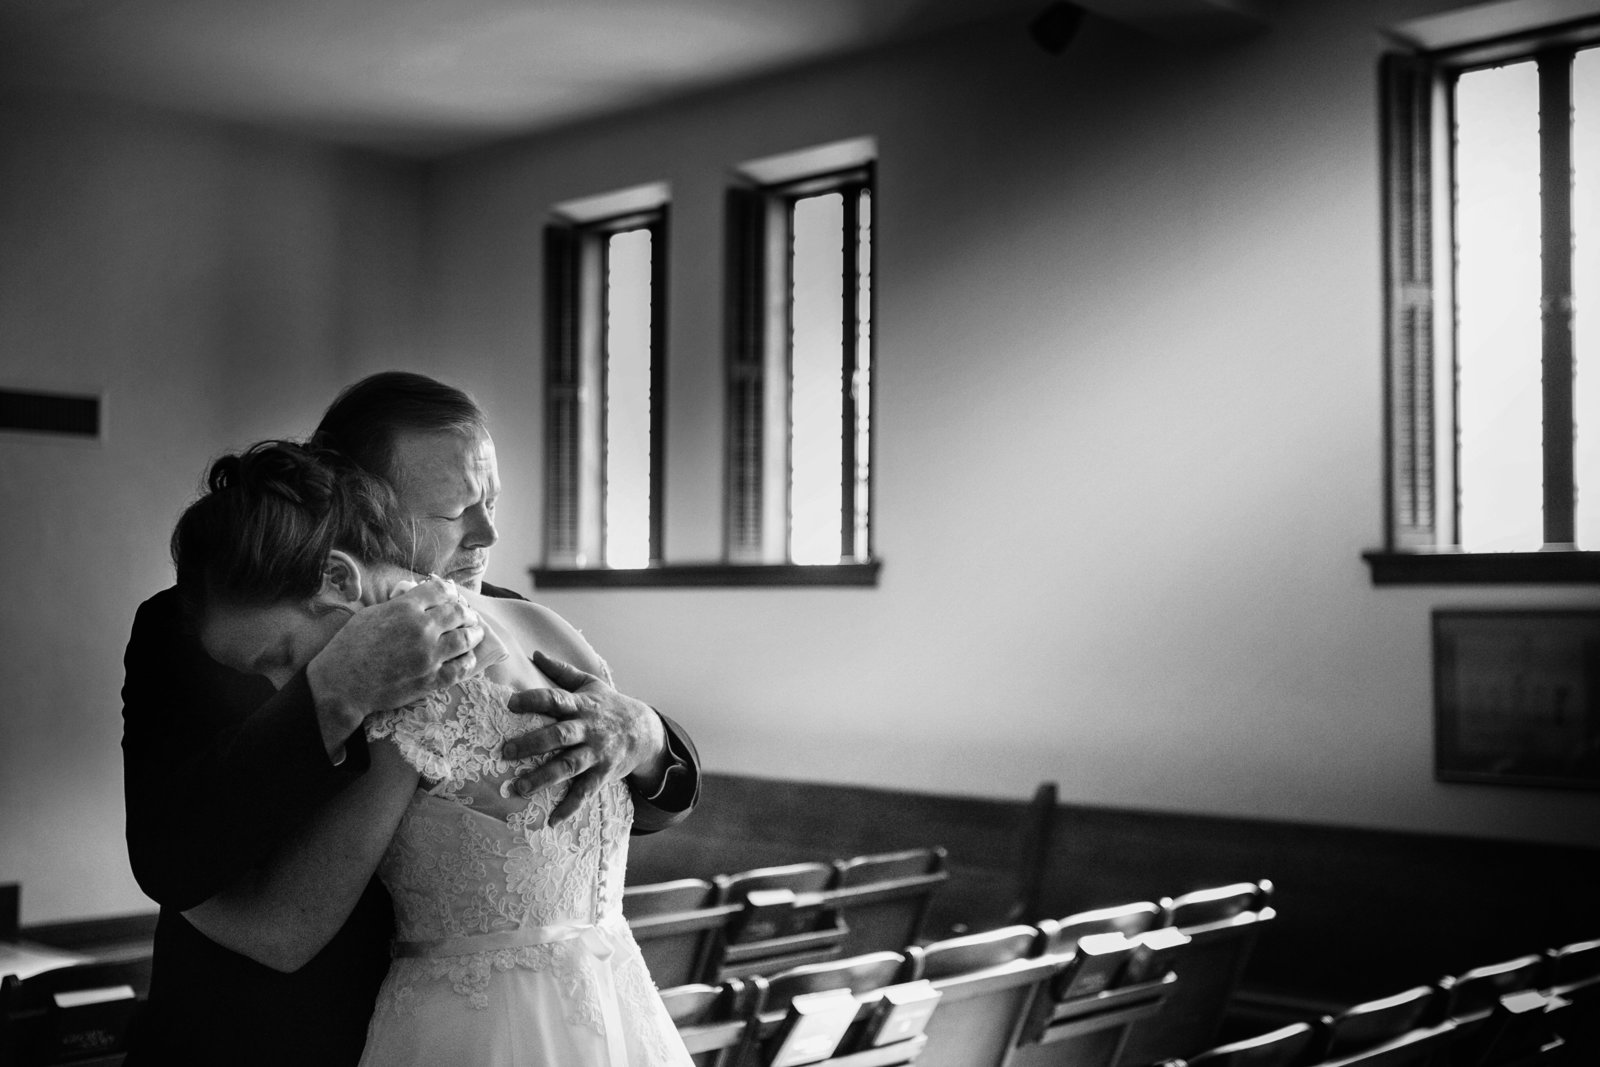 north carolina church wedding, raleigh north carolina wedding, church wedding, southern wedding, daughter father moment